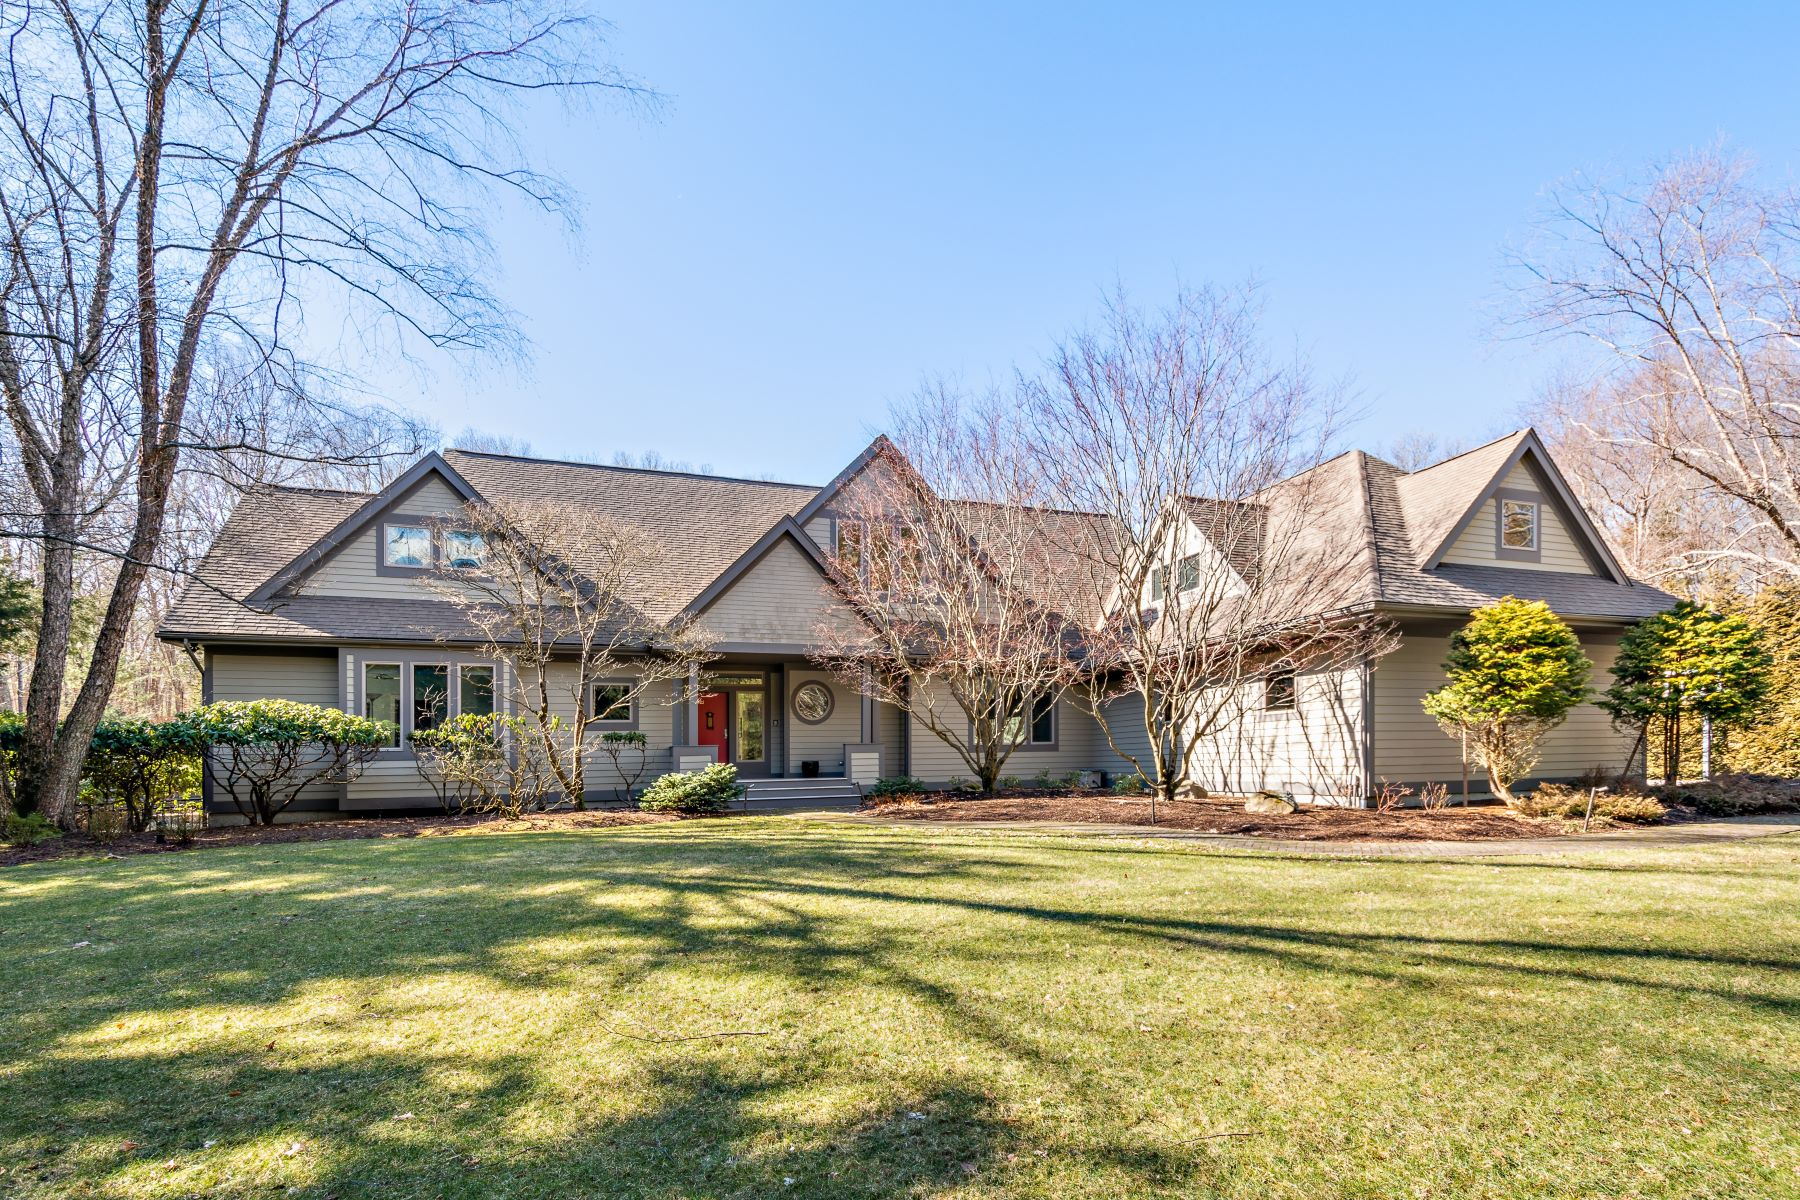 Single Family Homes for Sale at 70 Pheasant Drive, East Greenwich, RI 70 Pheasant Drive East Greenwich, Rhode Island 02818 United States